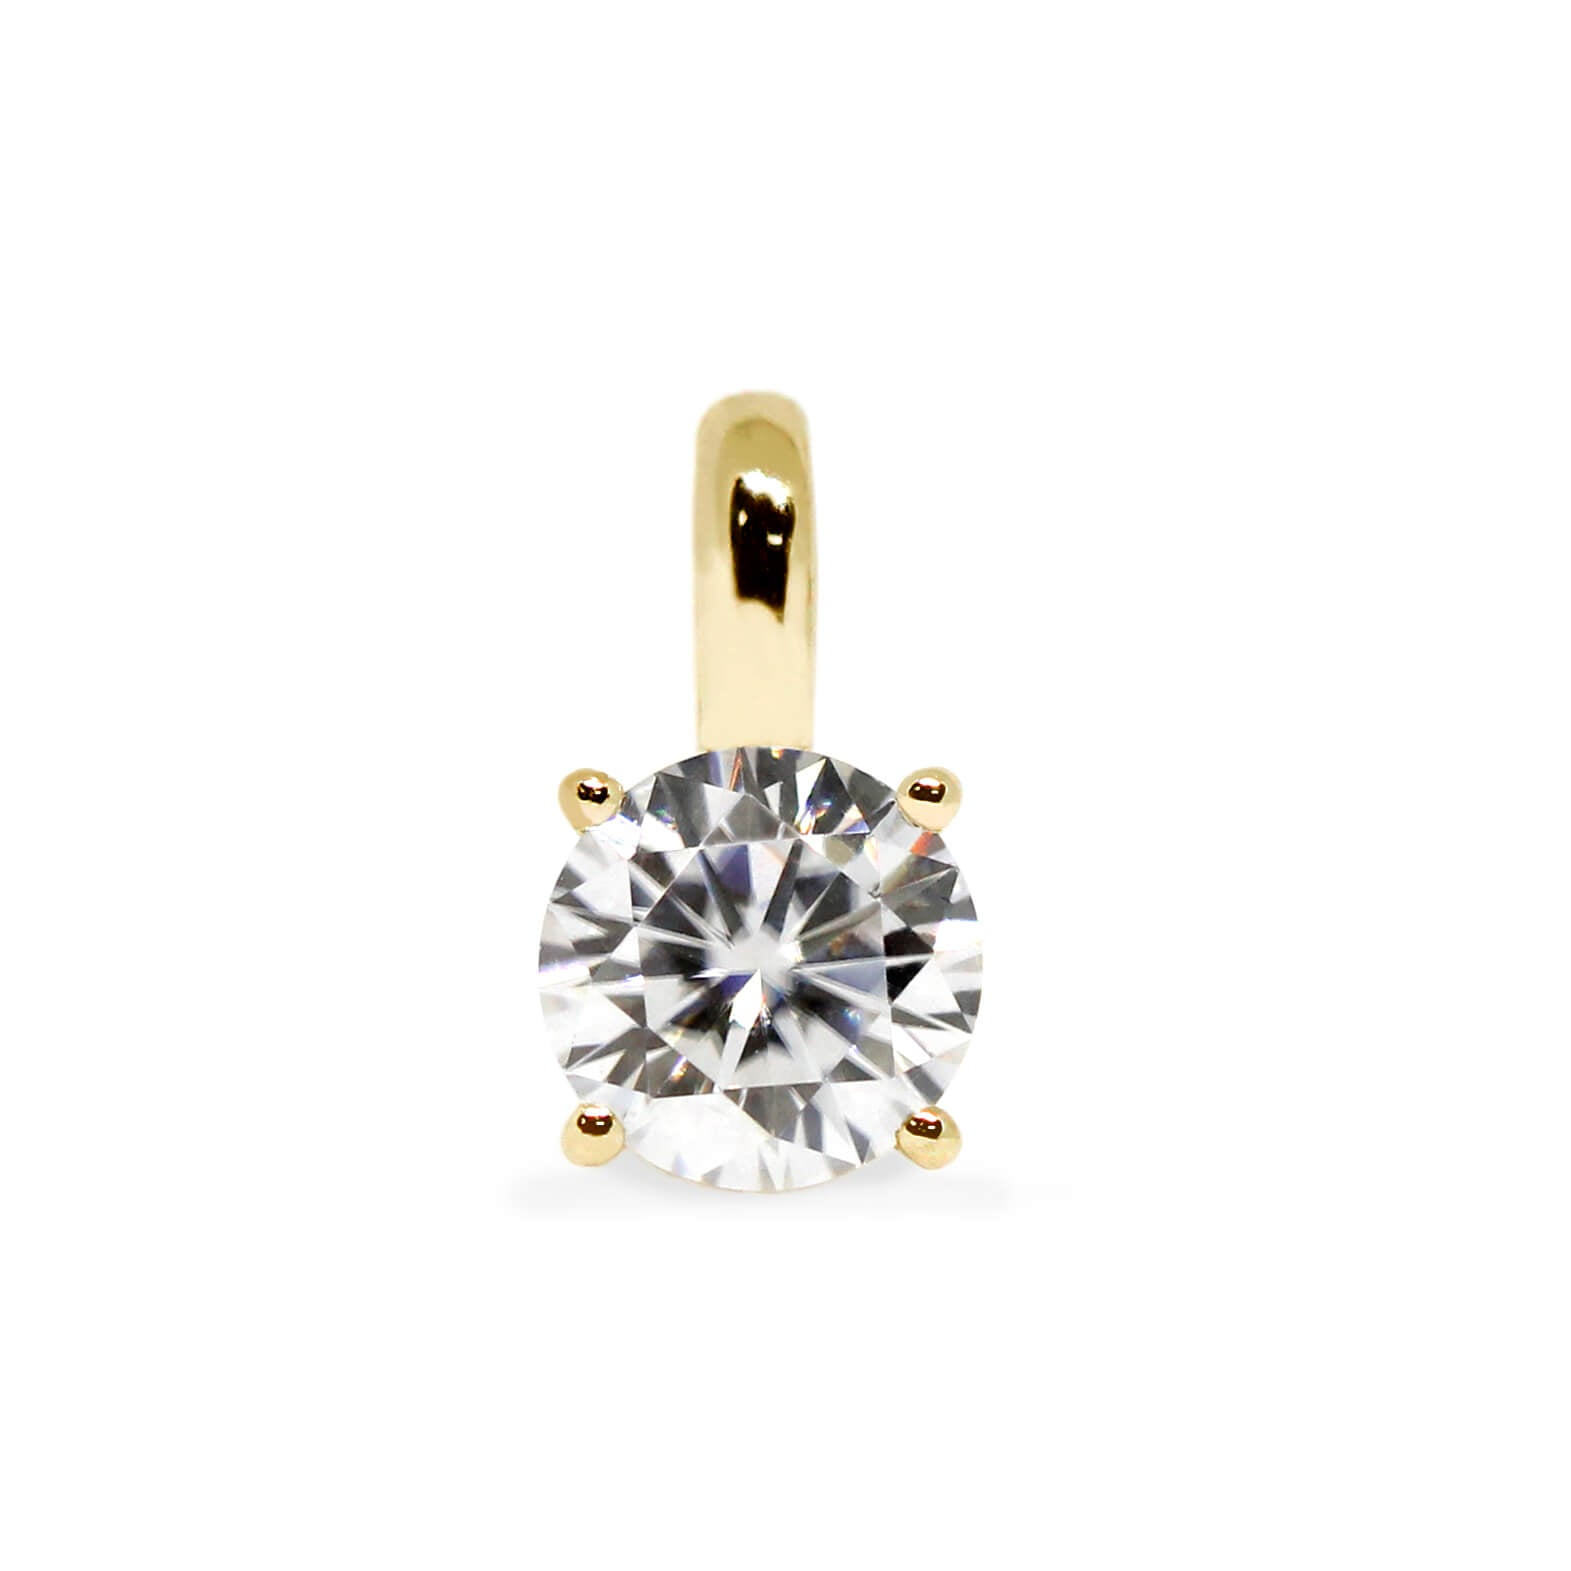 Light Grey Moissanite Round Solitaire 18K Gold Pendant - Lecaine Gems Moissanite